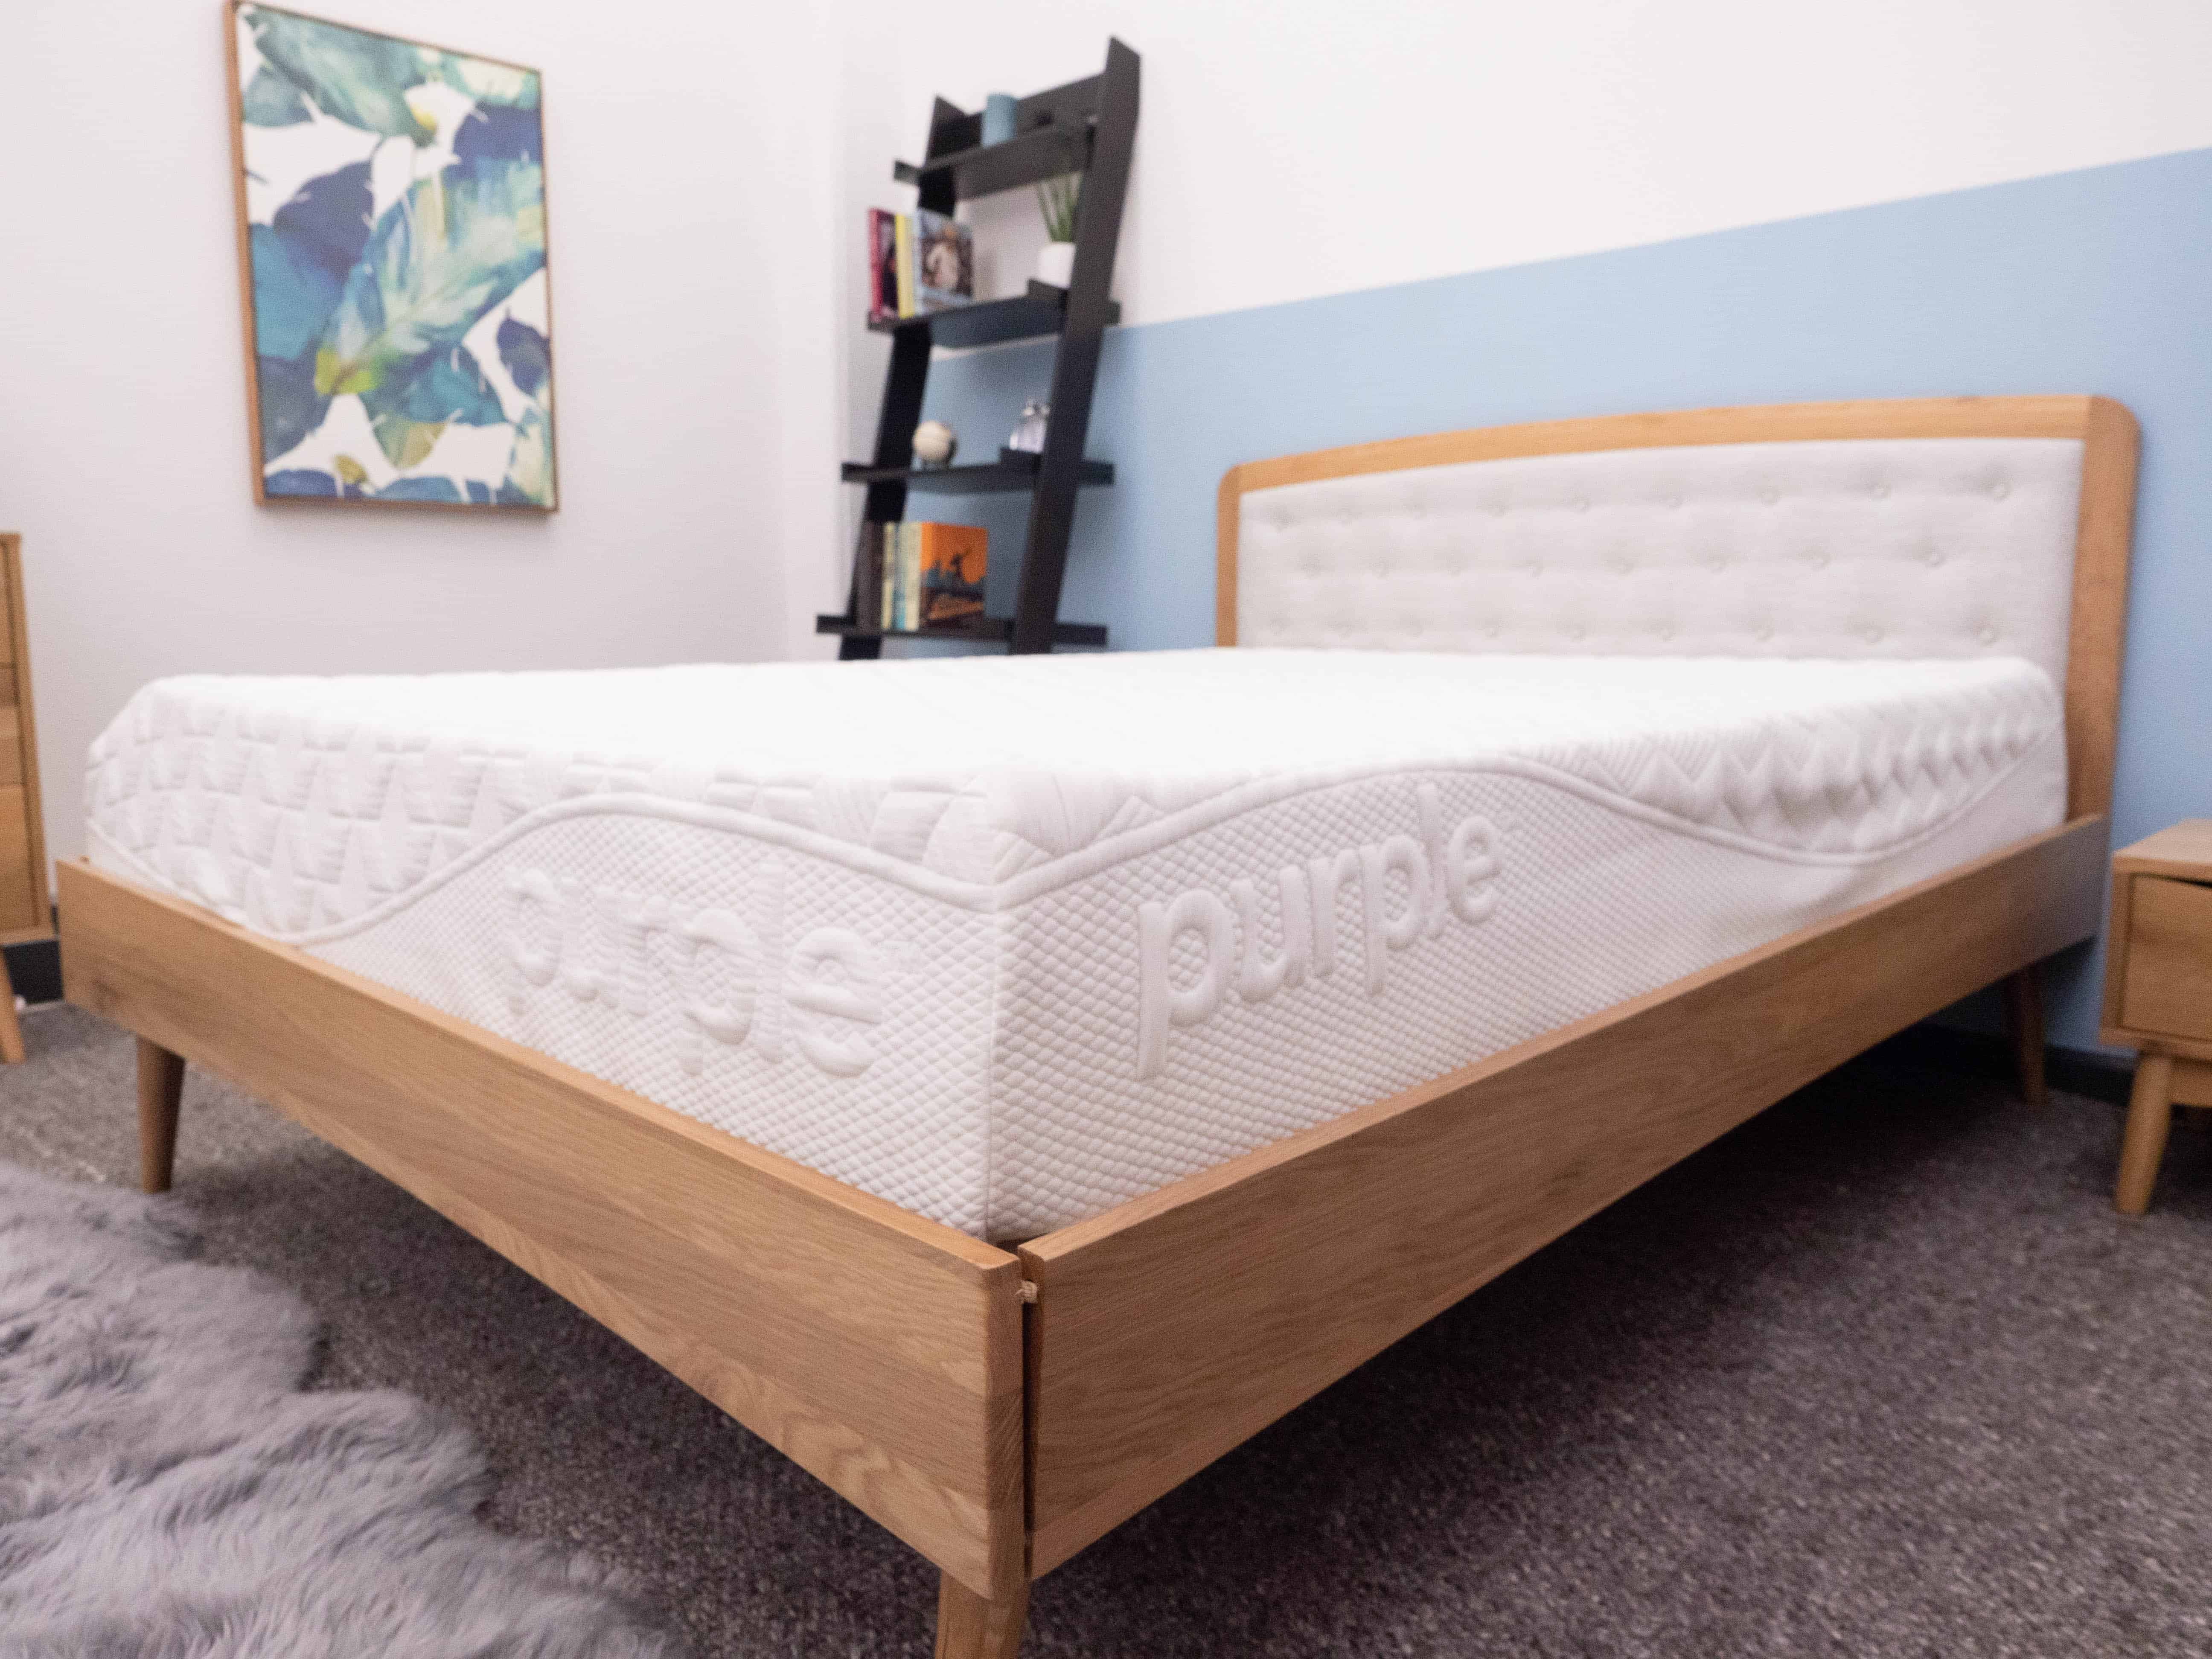 Used Twin Mattress For Sale Best Mattress For The Money 2019 Sleepopolis